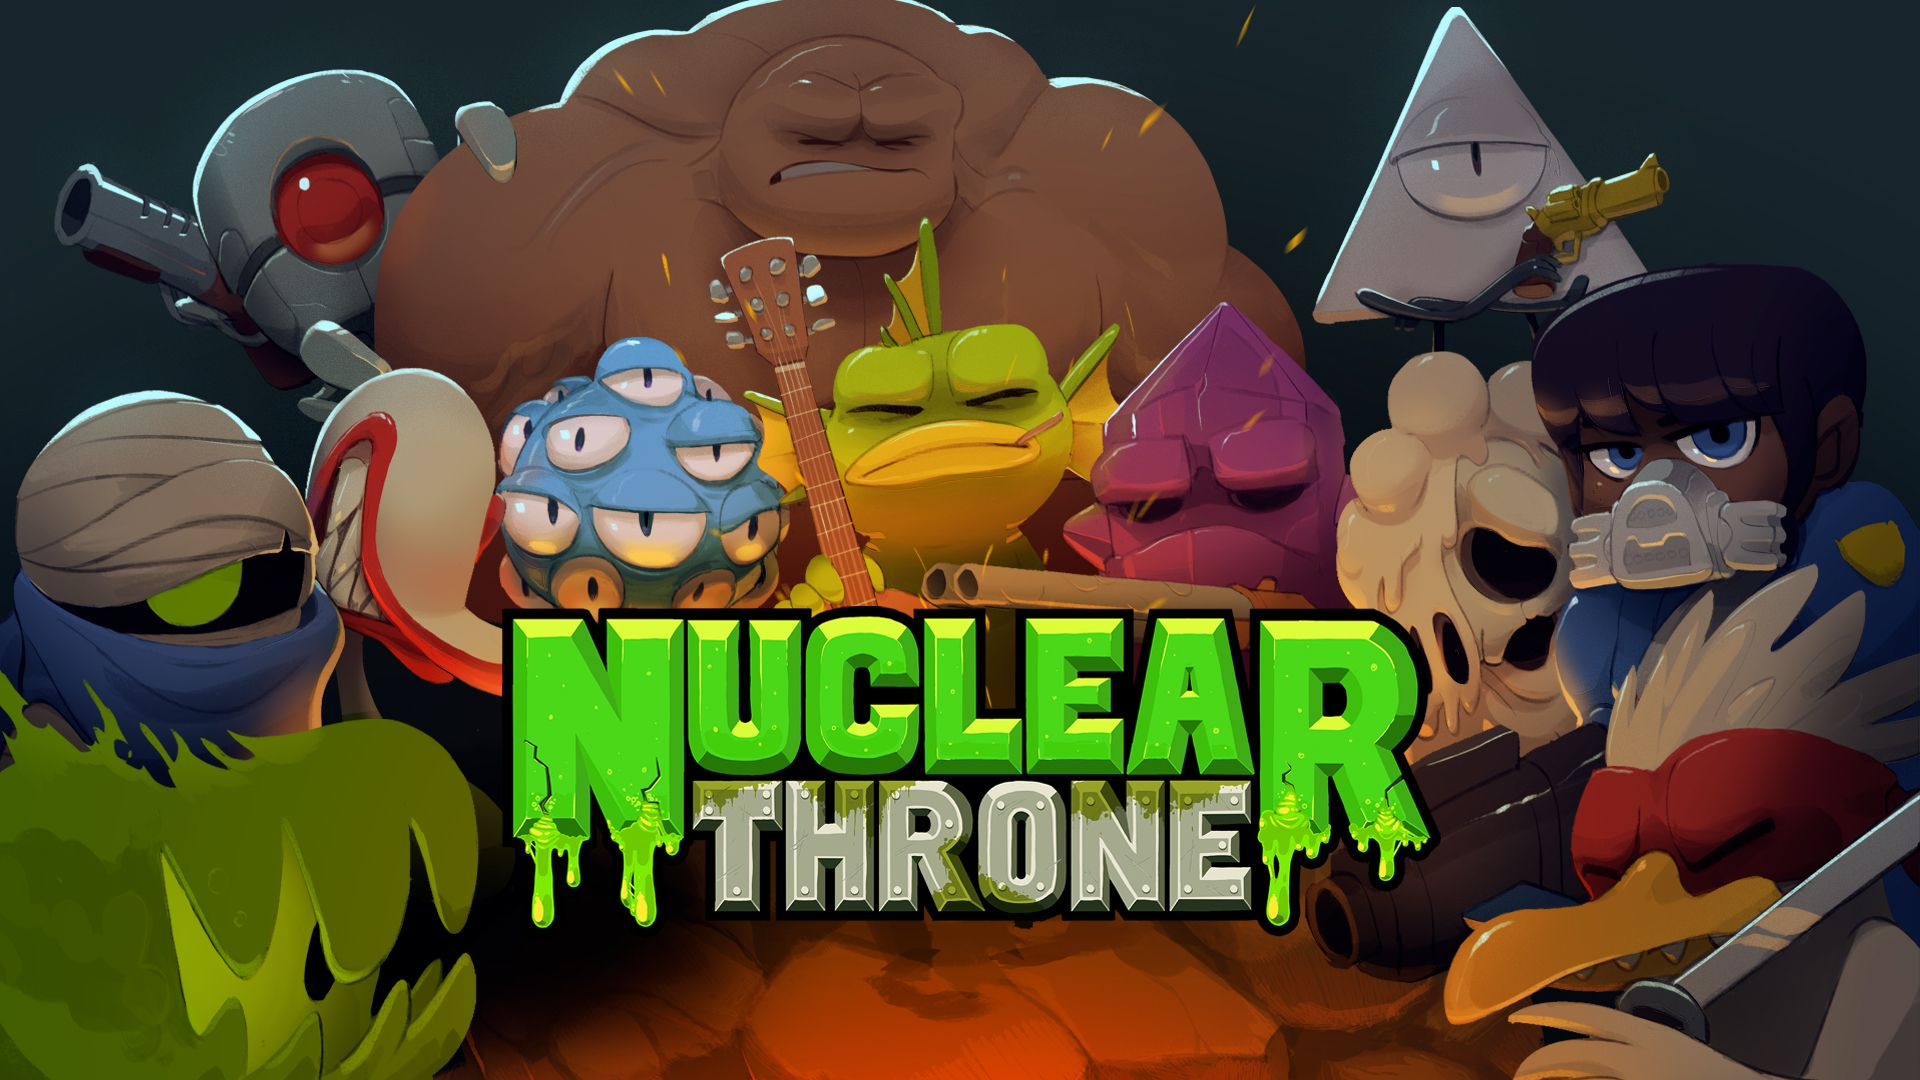 Game Pass Title Nuclear Throne Has an Interesting History